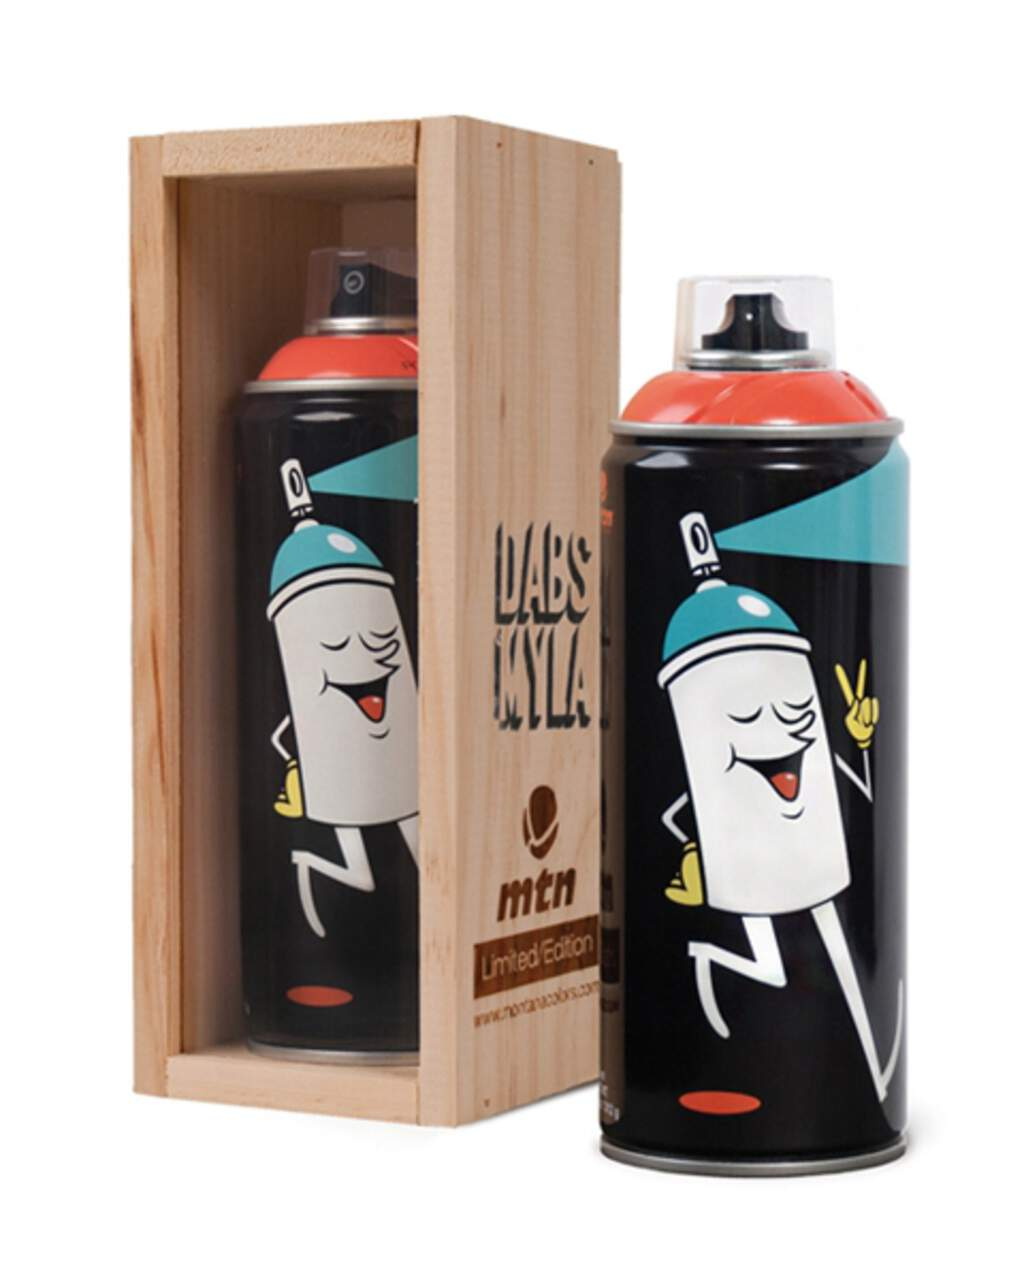 mtn: Dabs Myla Limited Edition Can 400ml, Spray Can